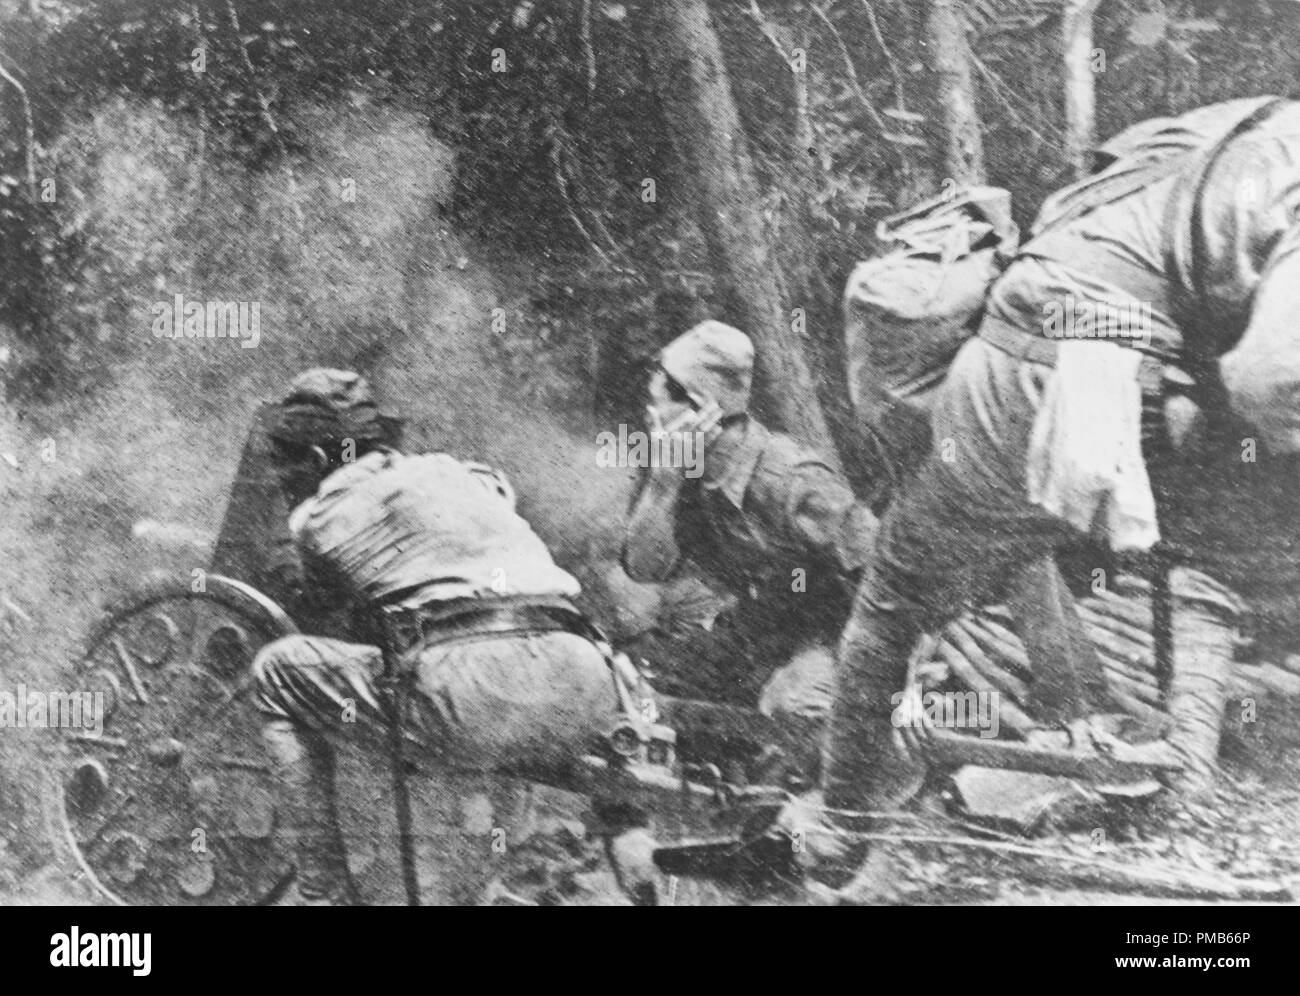 Small Japanese field gun in action, during the Bataan Campaign, April 1942. Copied from the Japanese book: 'Philippine Expeditionary Force,' published in 1943. Original Japanese caption: 'The pursuit of the enemy goes into its final stages. The shot, like the coupe de grace from the executioner's gun, is on its way. The enemy returns fire. The jungle is impenetrable.' - Stock Image